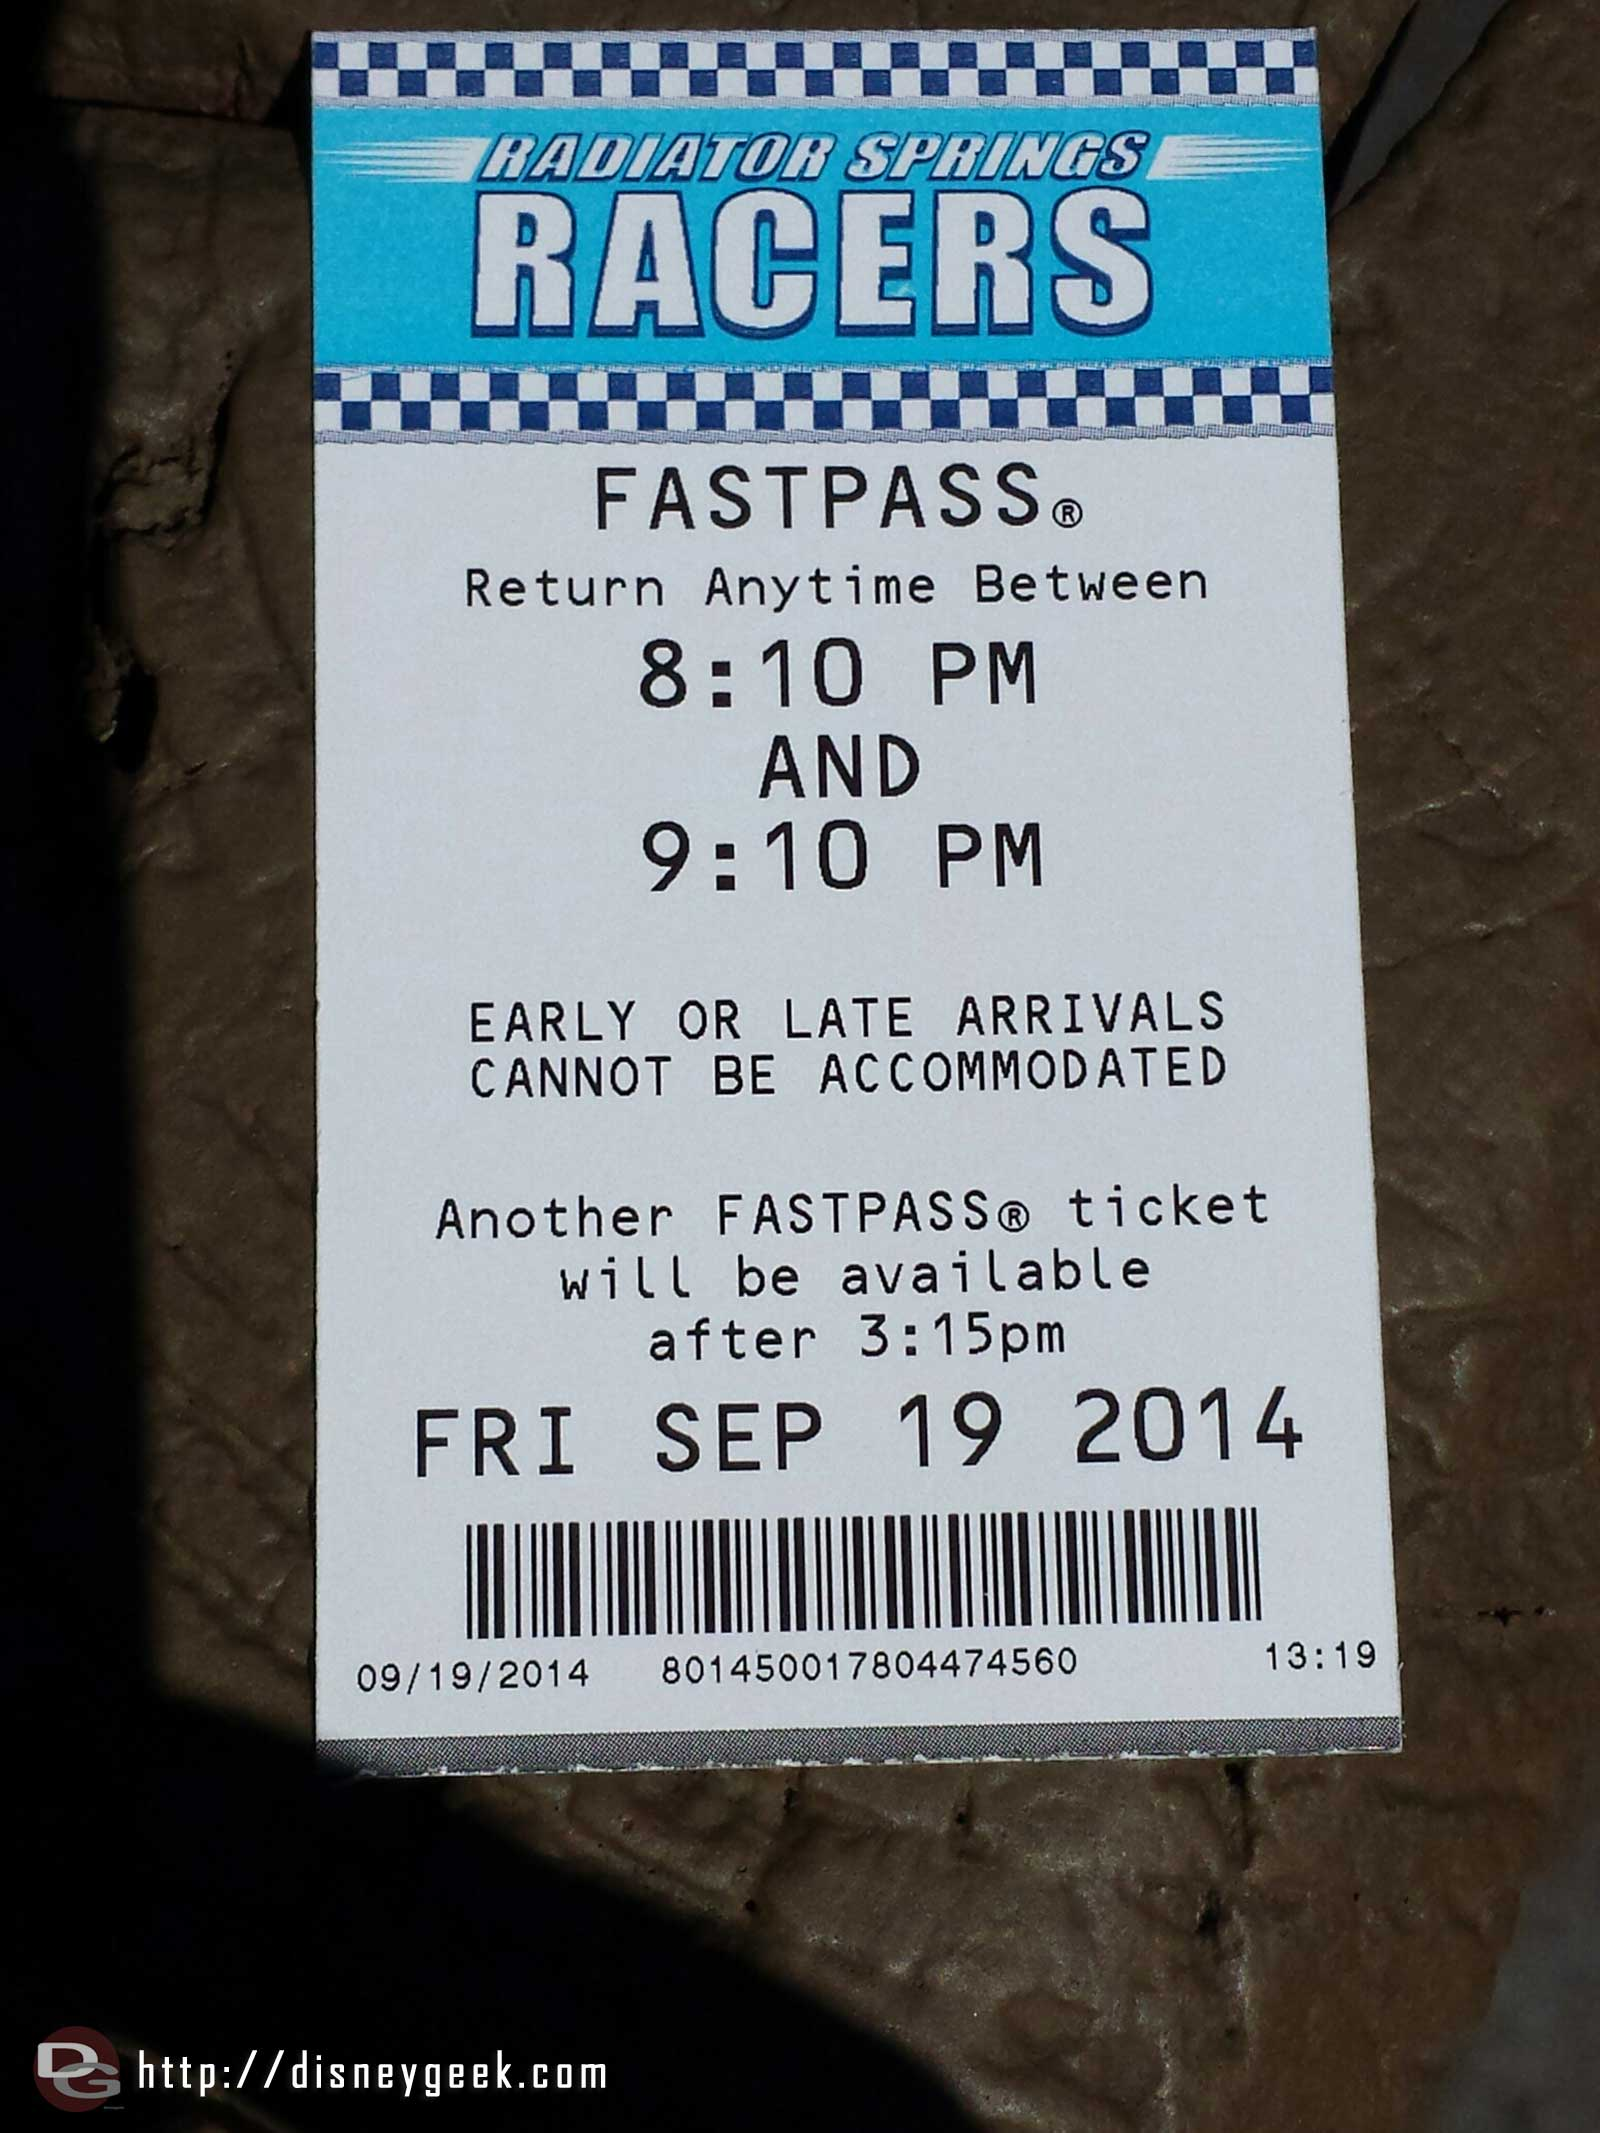 FastPasses still available for the Radiator Springs Racers cannot remember ever picking one up after noon